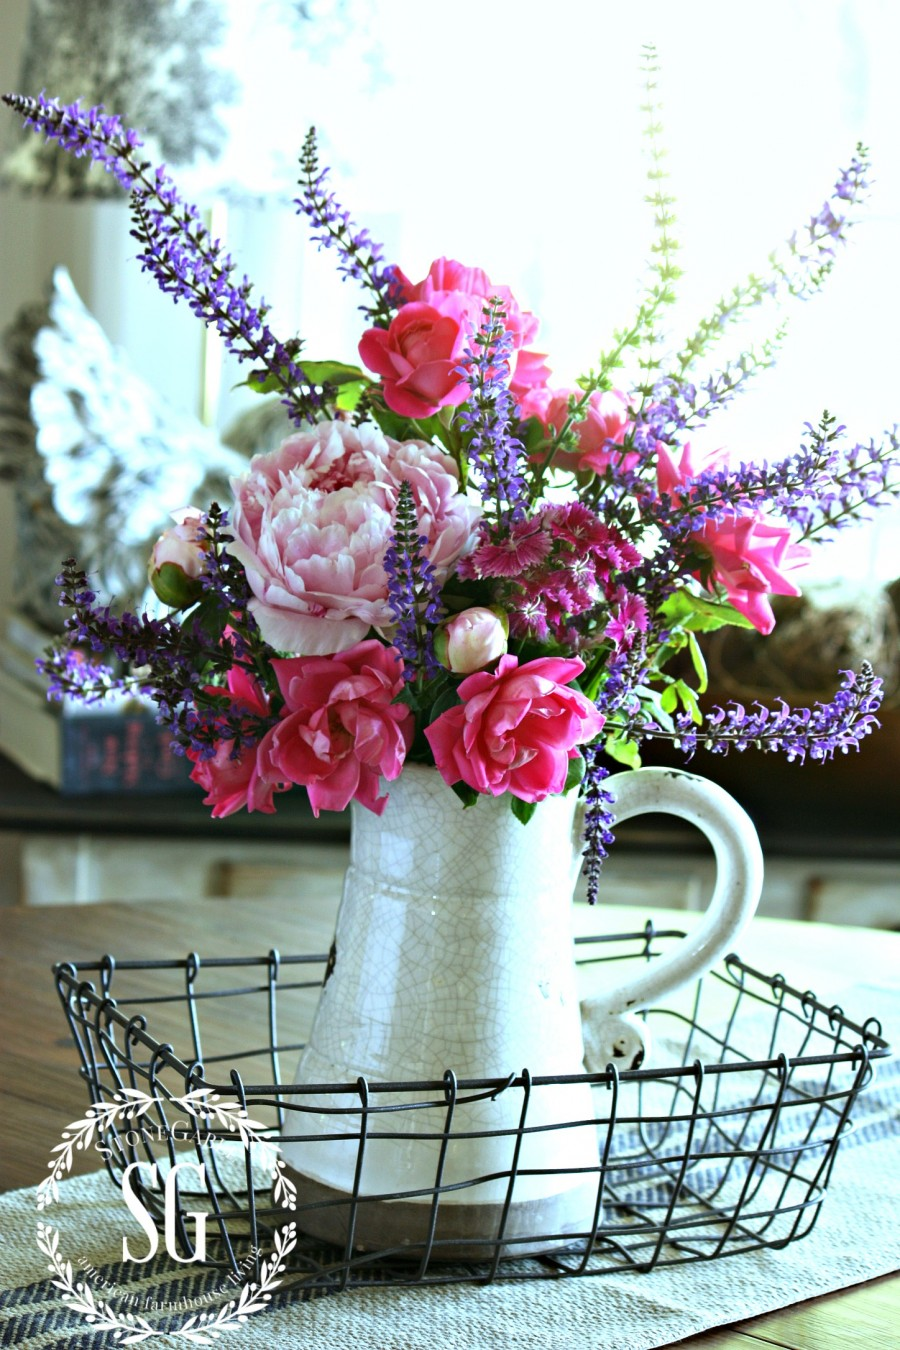 Roses In Garden: 10 TIPS FOR ARRANGING GARDEN FLOWERS... A BUDGET FRIENDLY